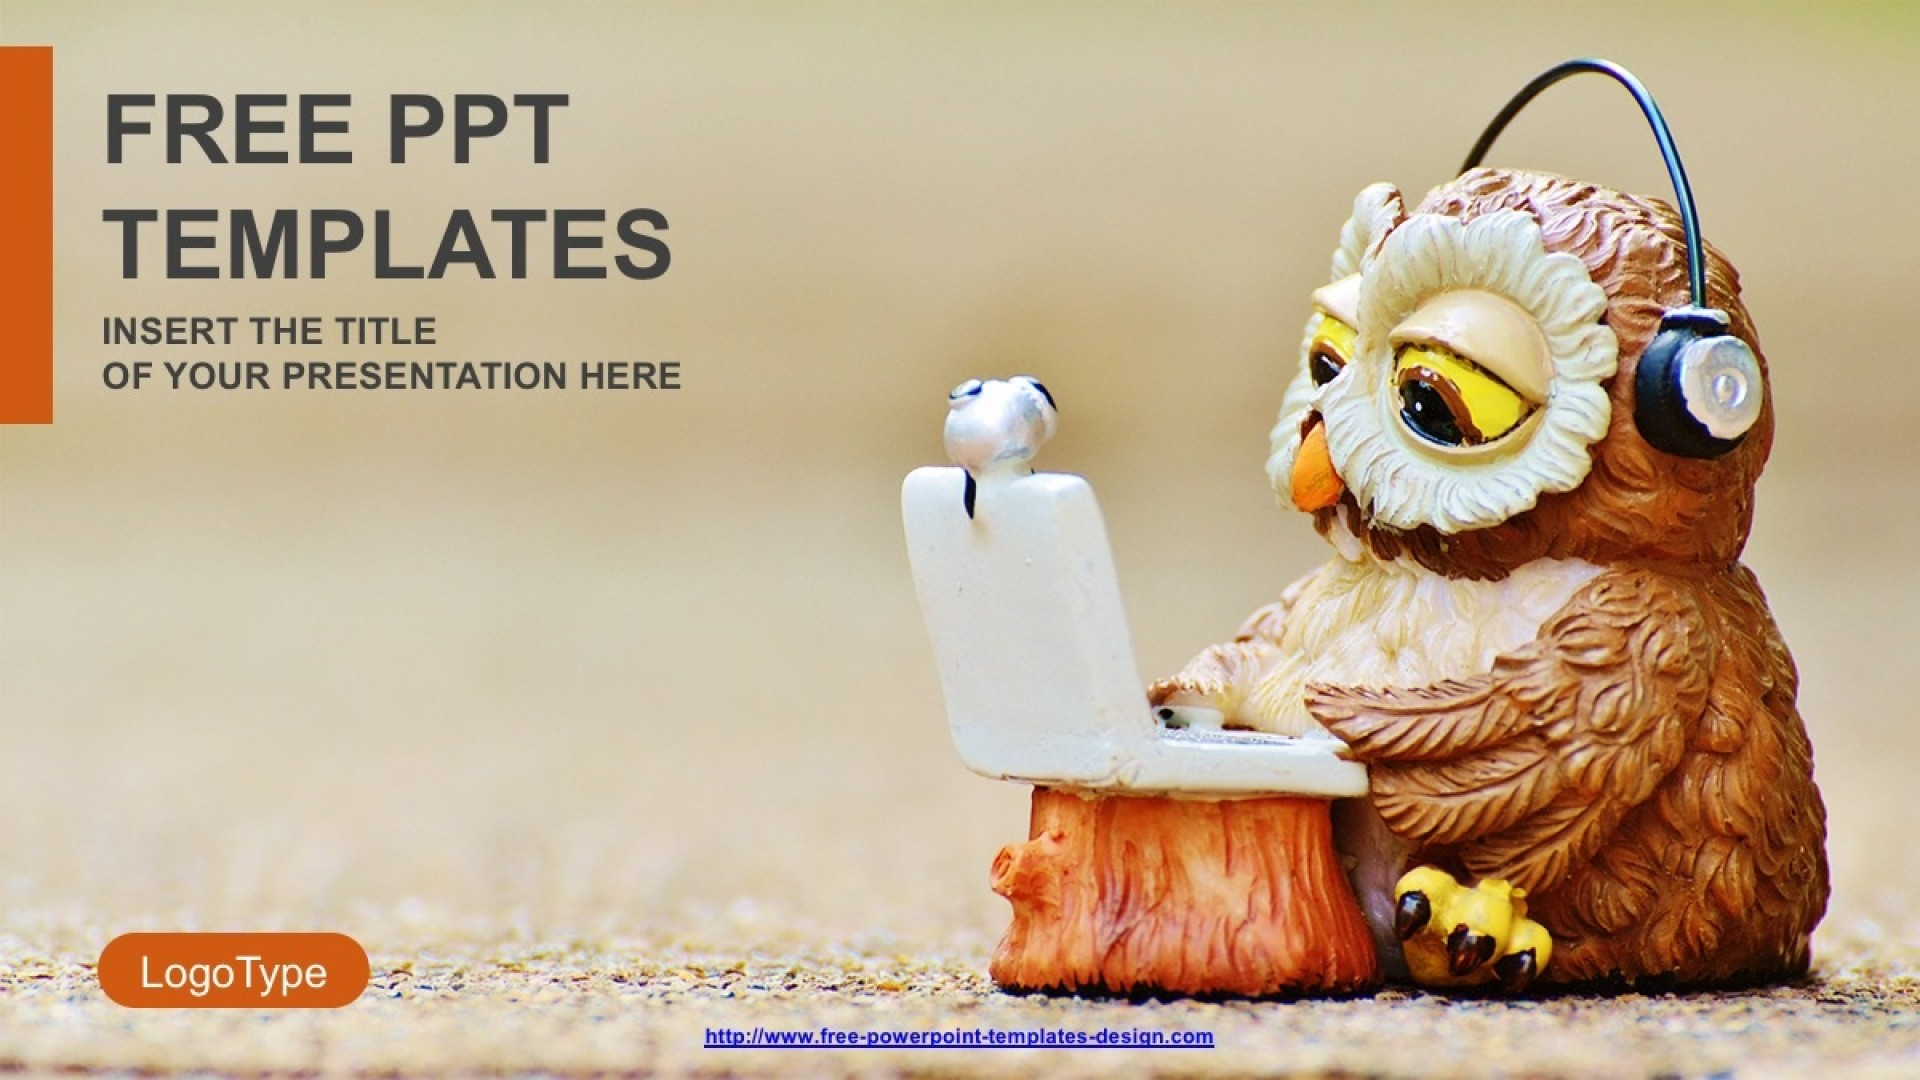 004 Frightening Powerpoint Template Free Education Inspiration  Download Presentation Ppt1920